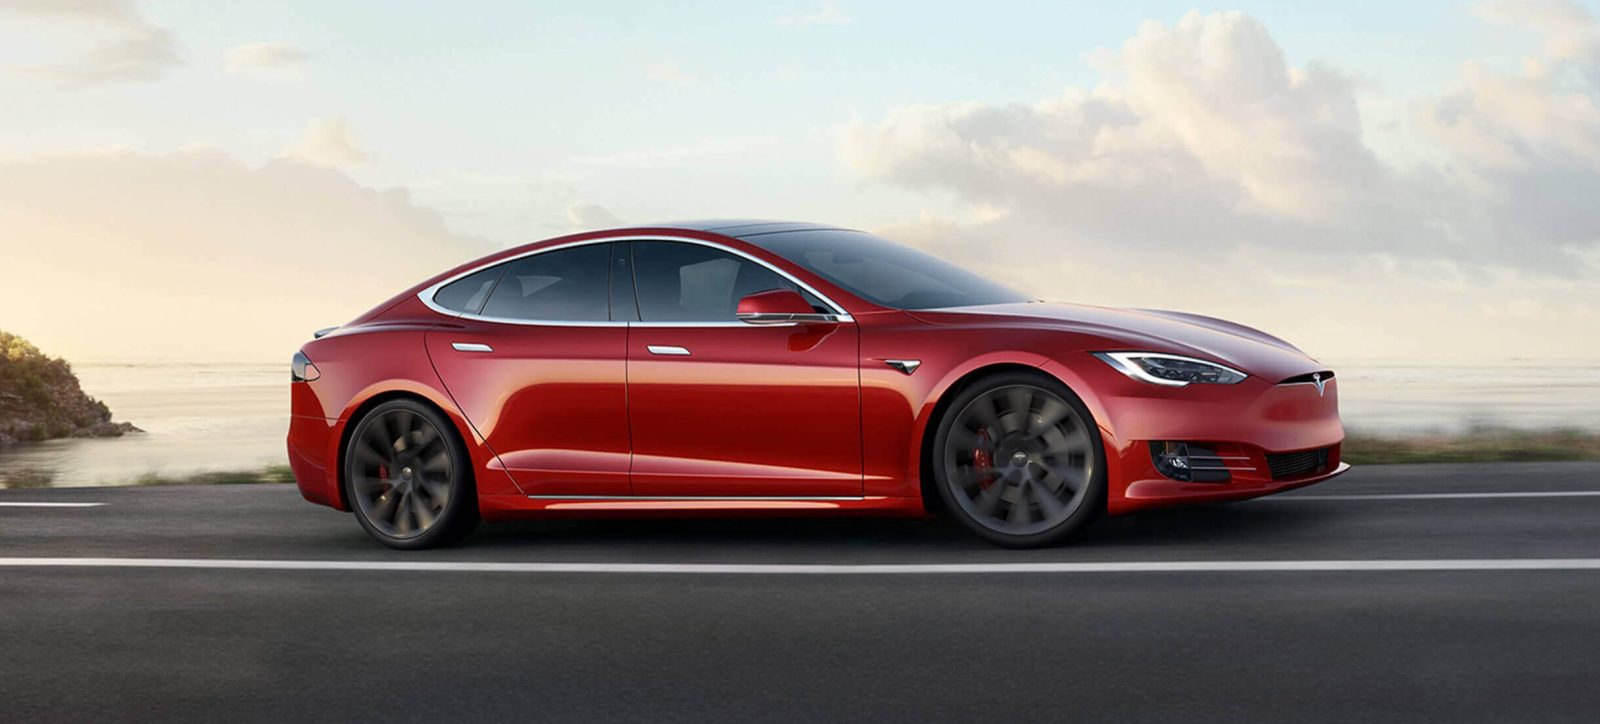 Tesla claims 3x improved thermal endurance in Model S/X ...